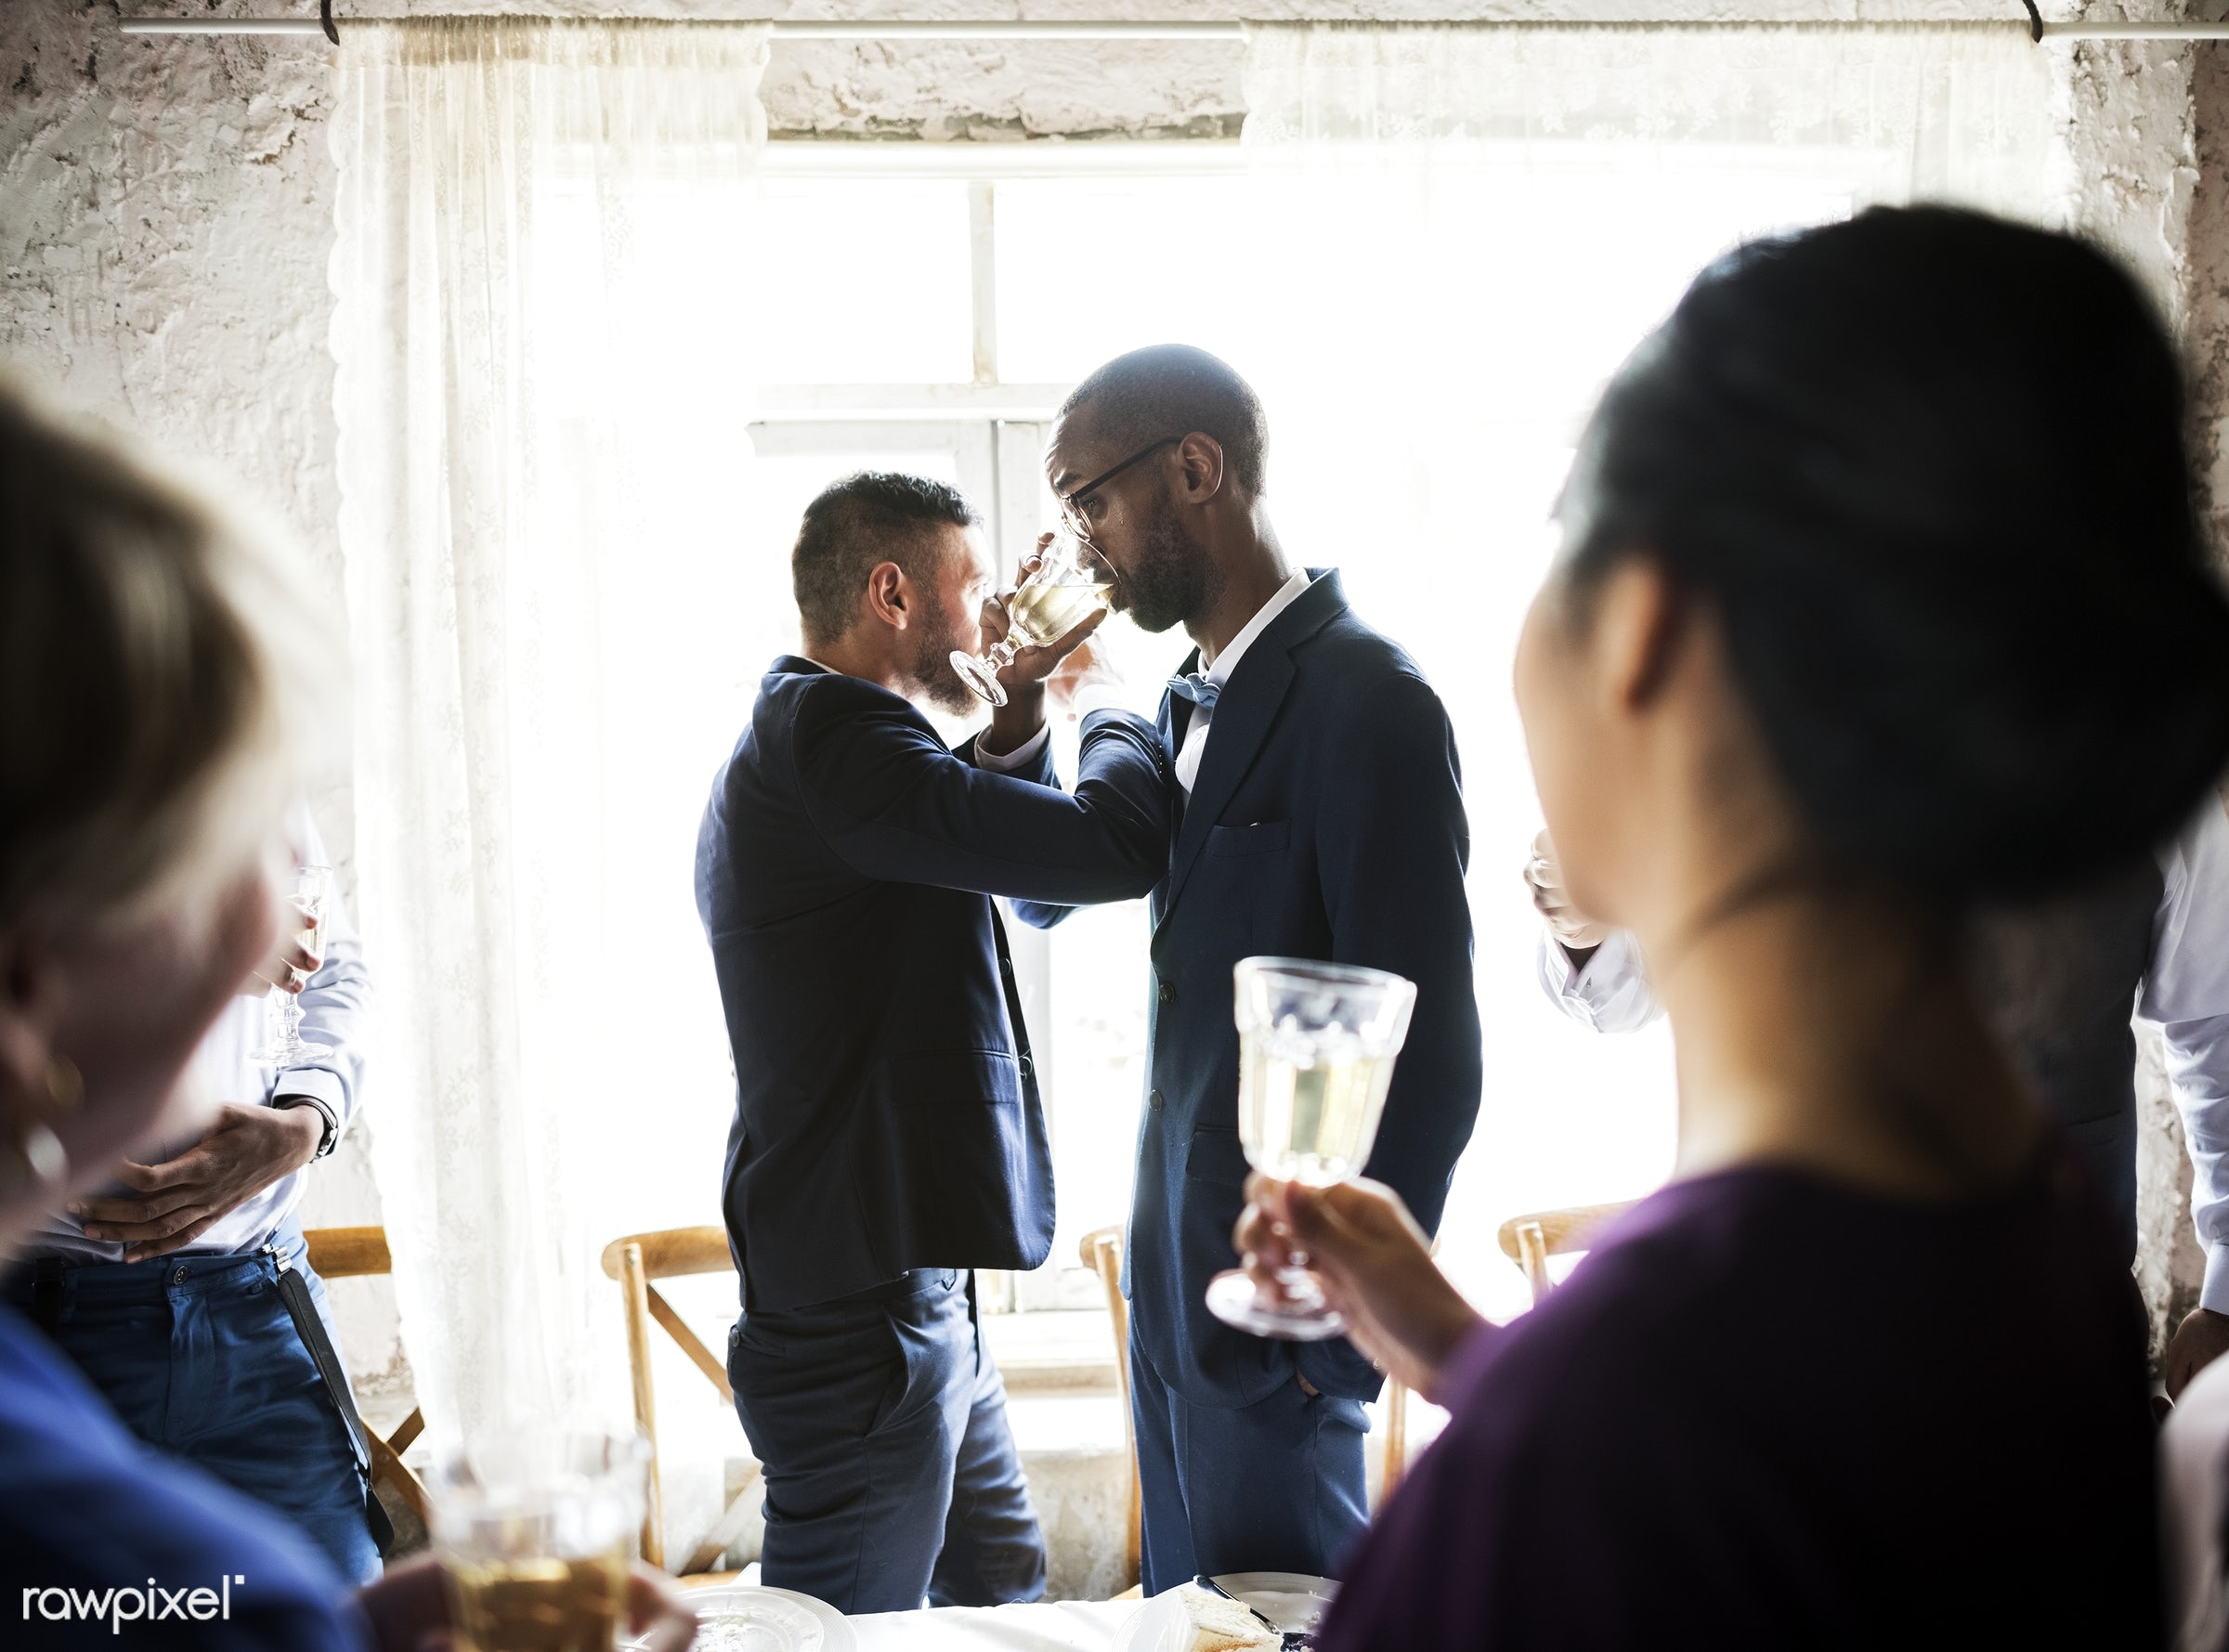 person, glasses, drinking, holding, occasion, together, love, friends, married, congrats, hands, suits, couple, men,...